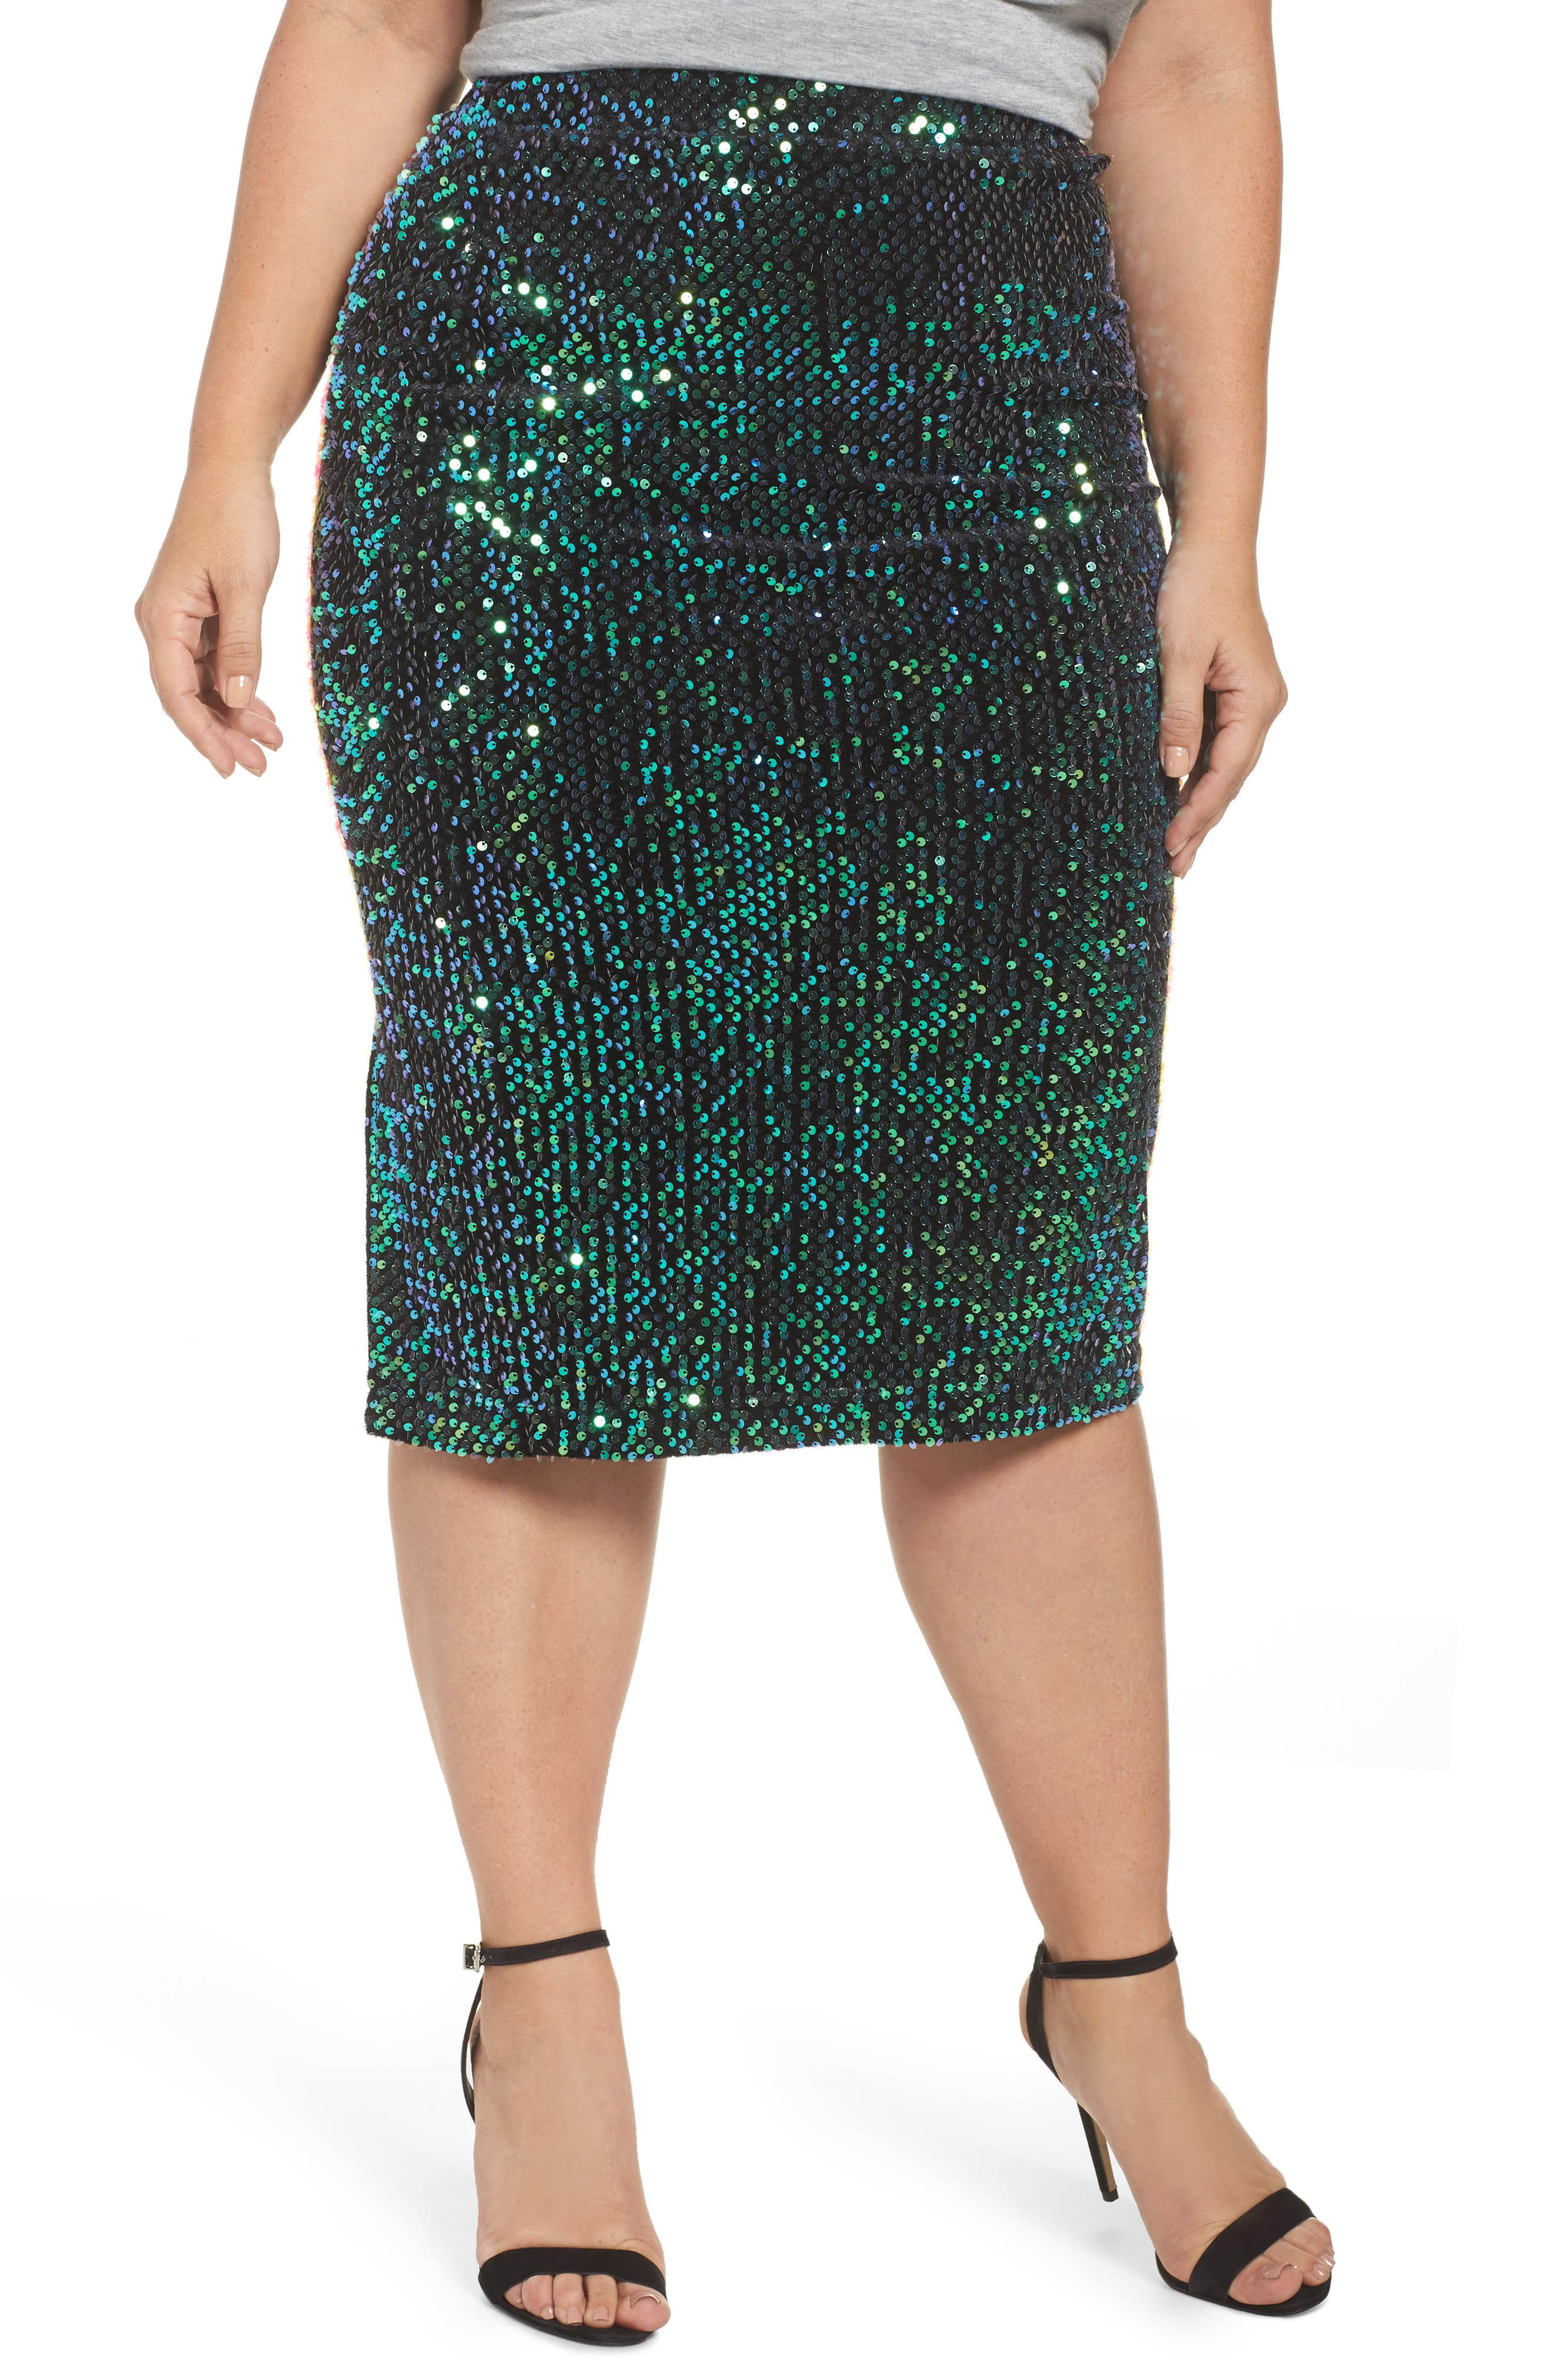 Alternate Image 1 Selected - LOST INK Sequin Pencil Skirt (Plus Size)